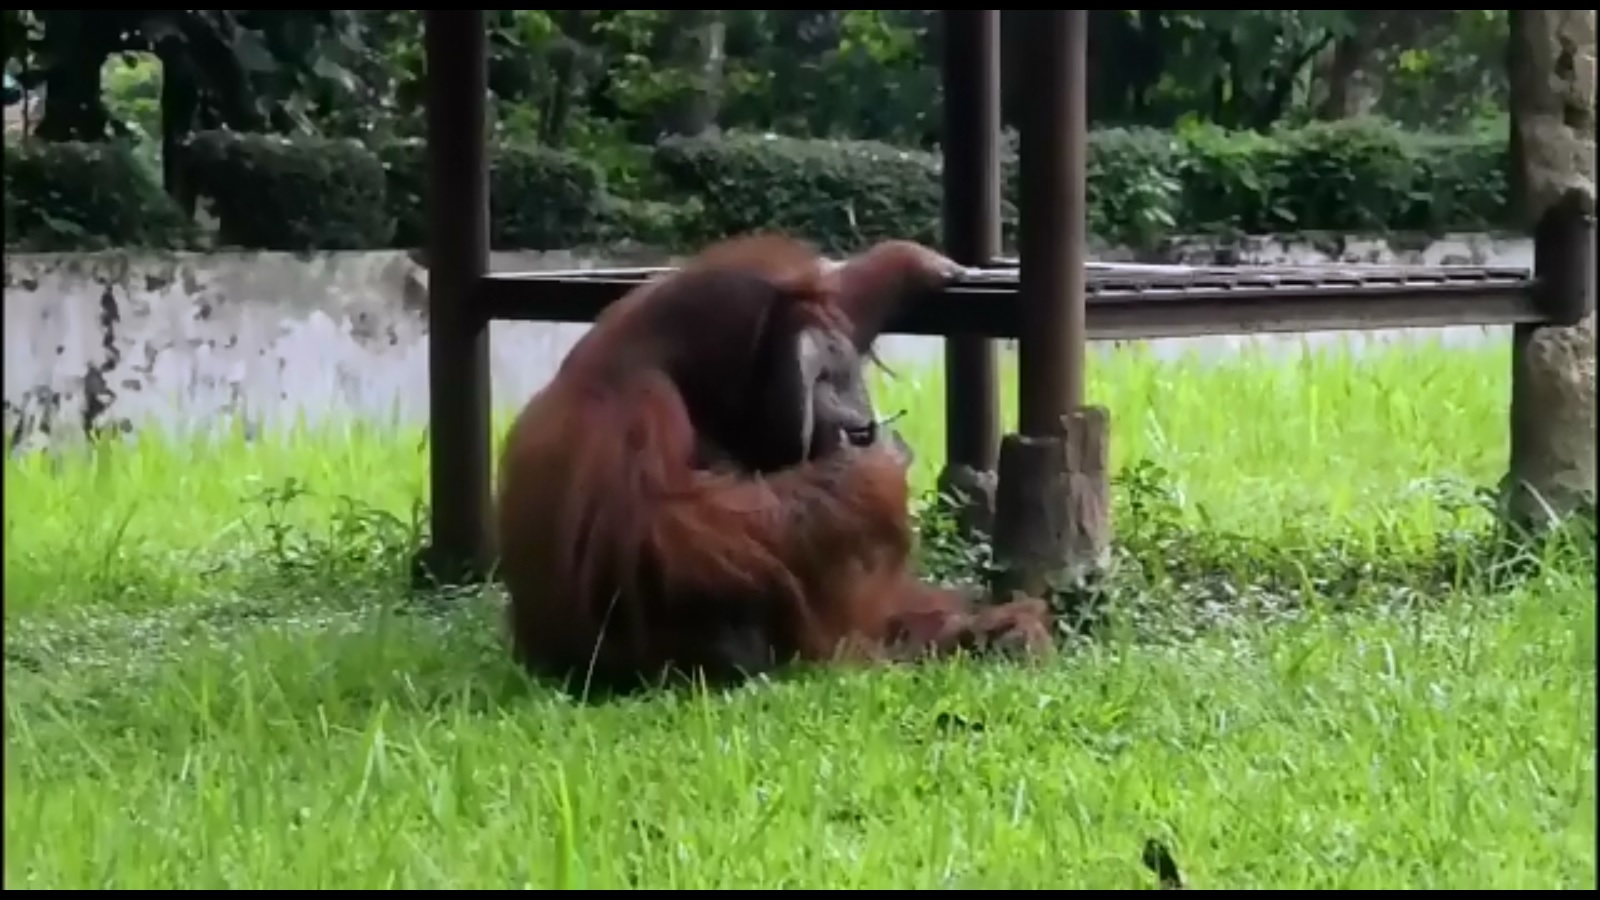 Smoking orangutan video goes viral, draws criticism from animal rights activists